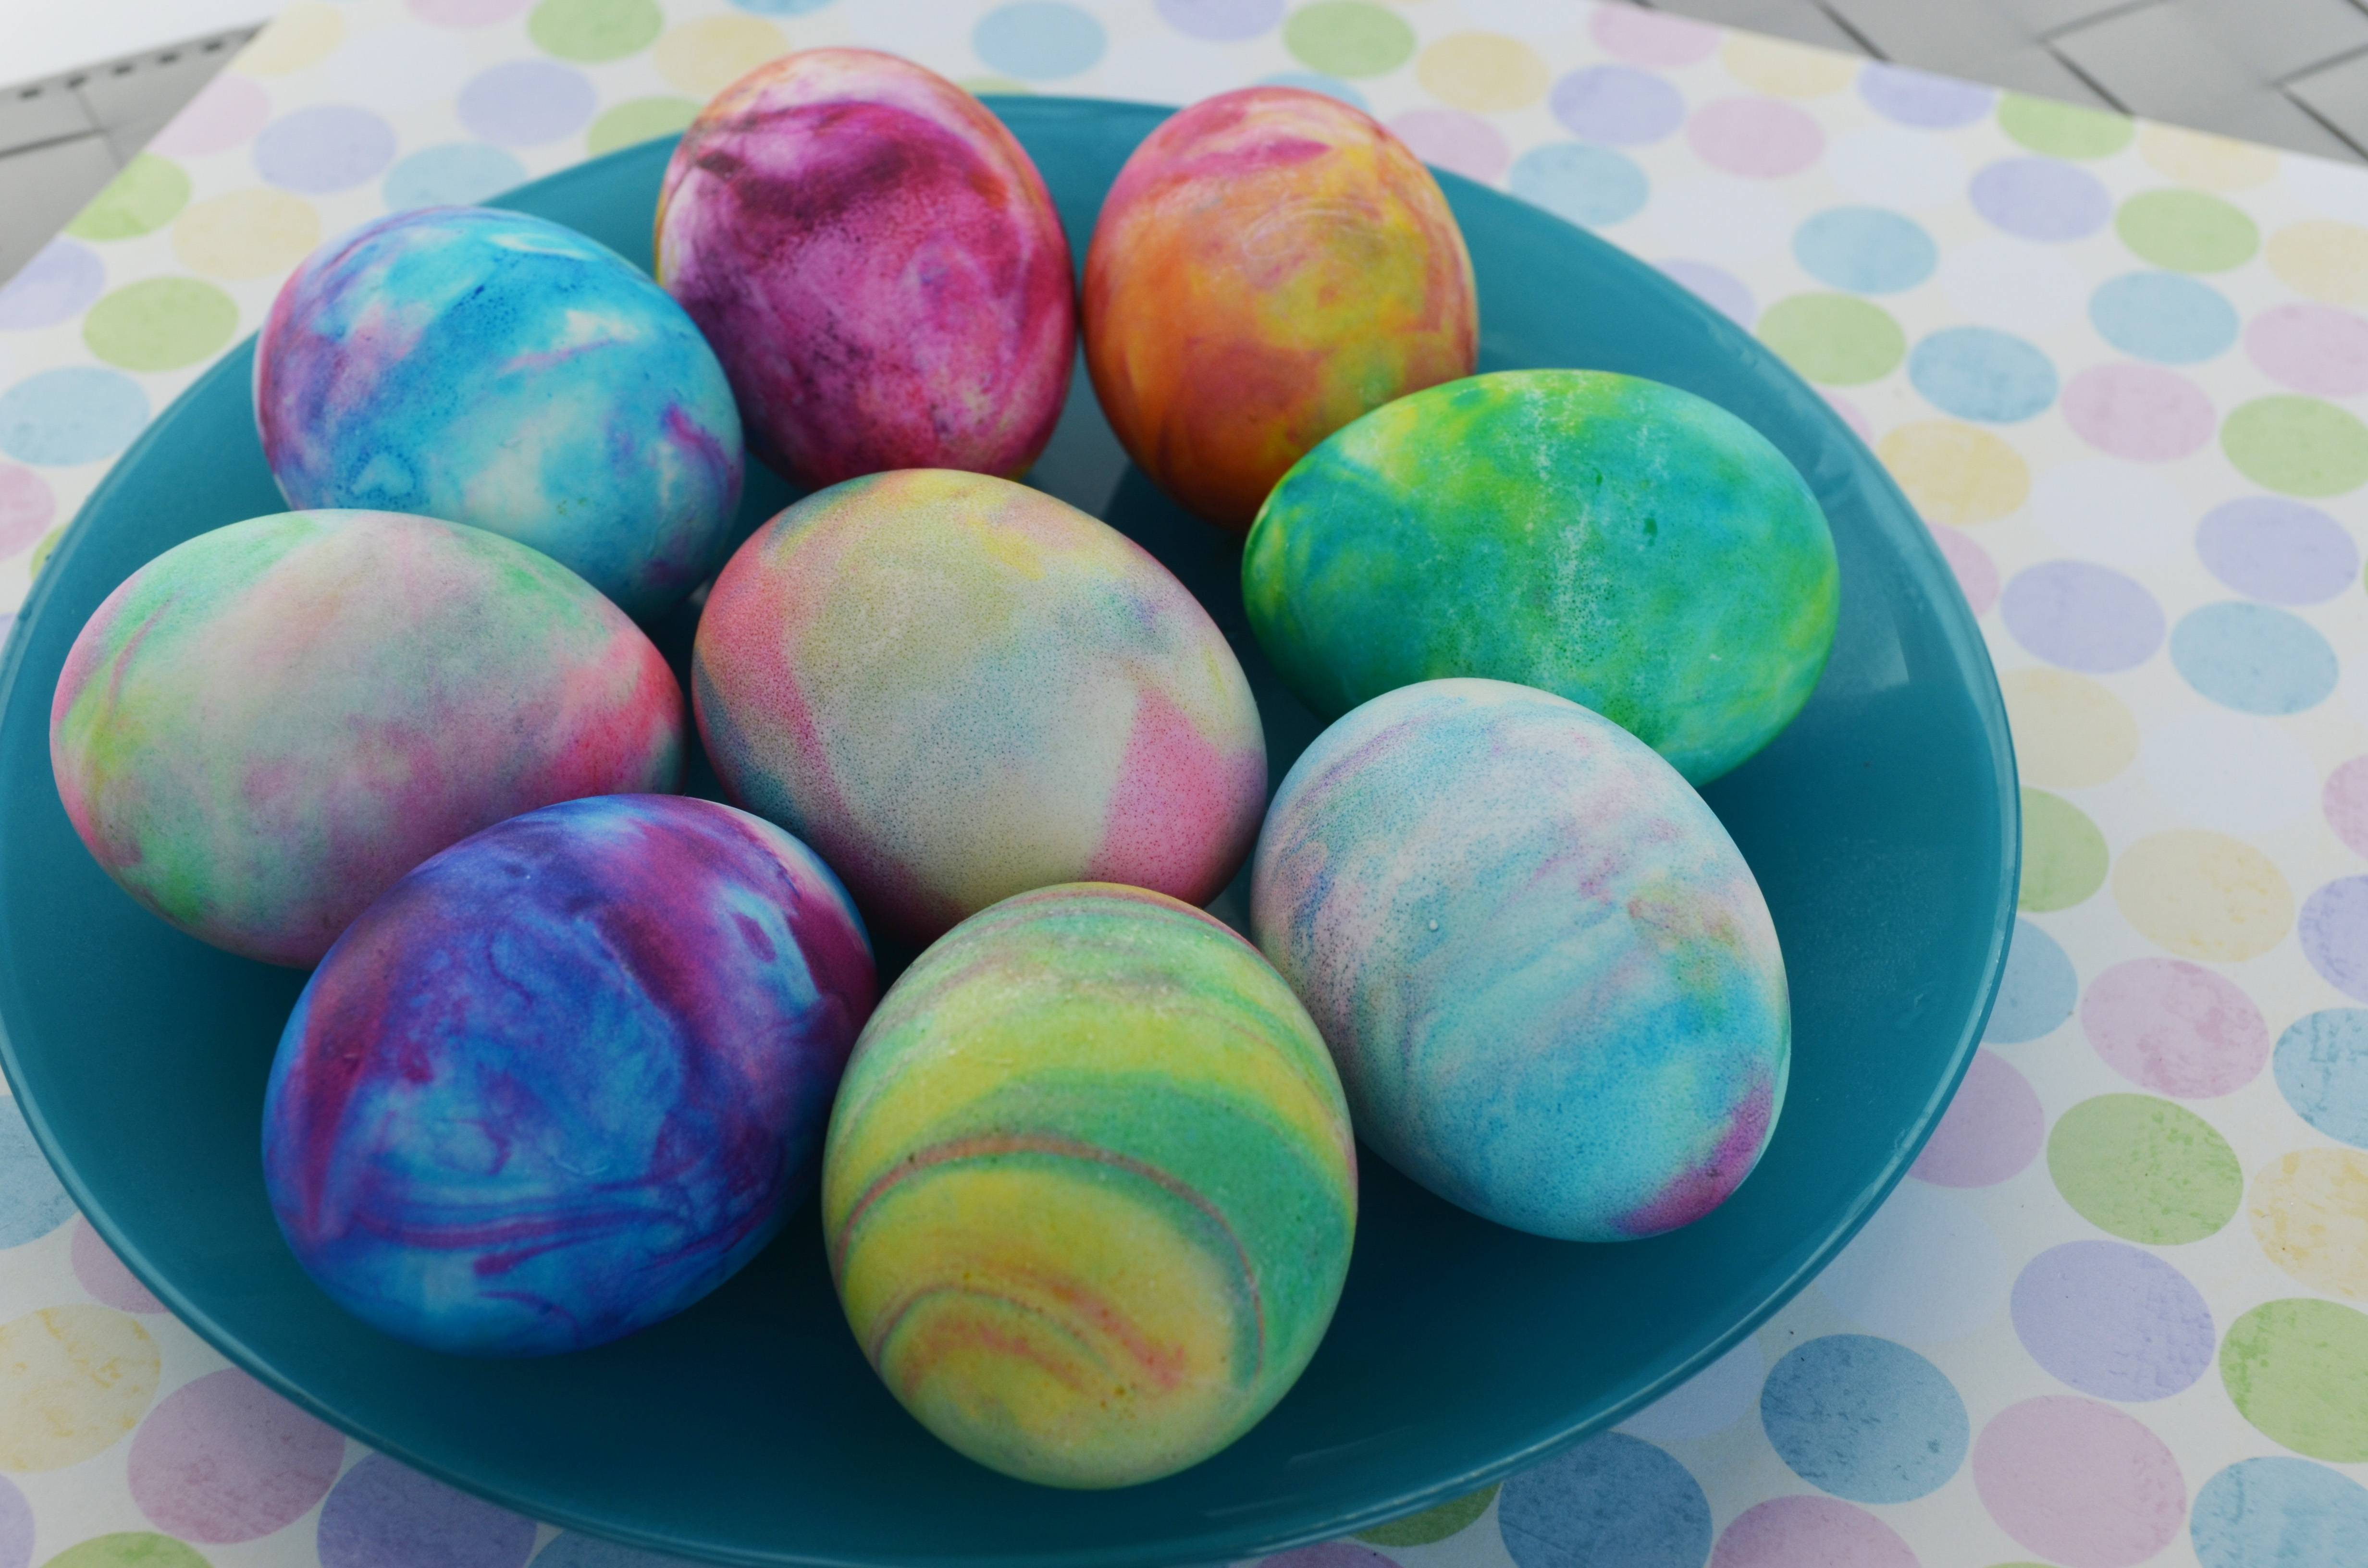 This year, try shaving cream and liquid food coloring to dye hard-boiled eggs, which gives them a tie-dyed effect.